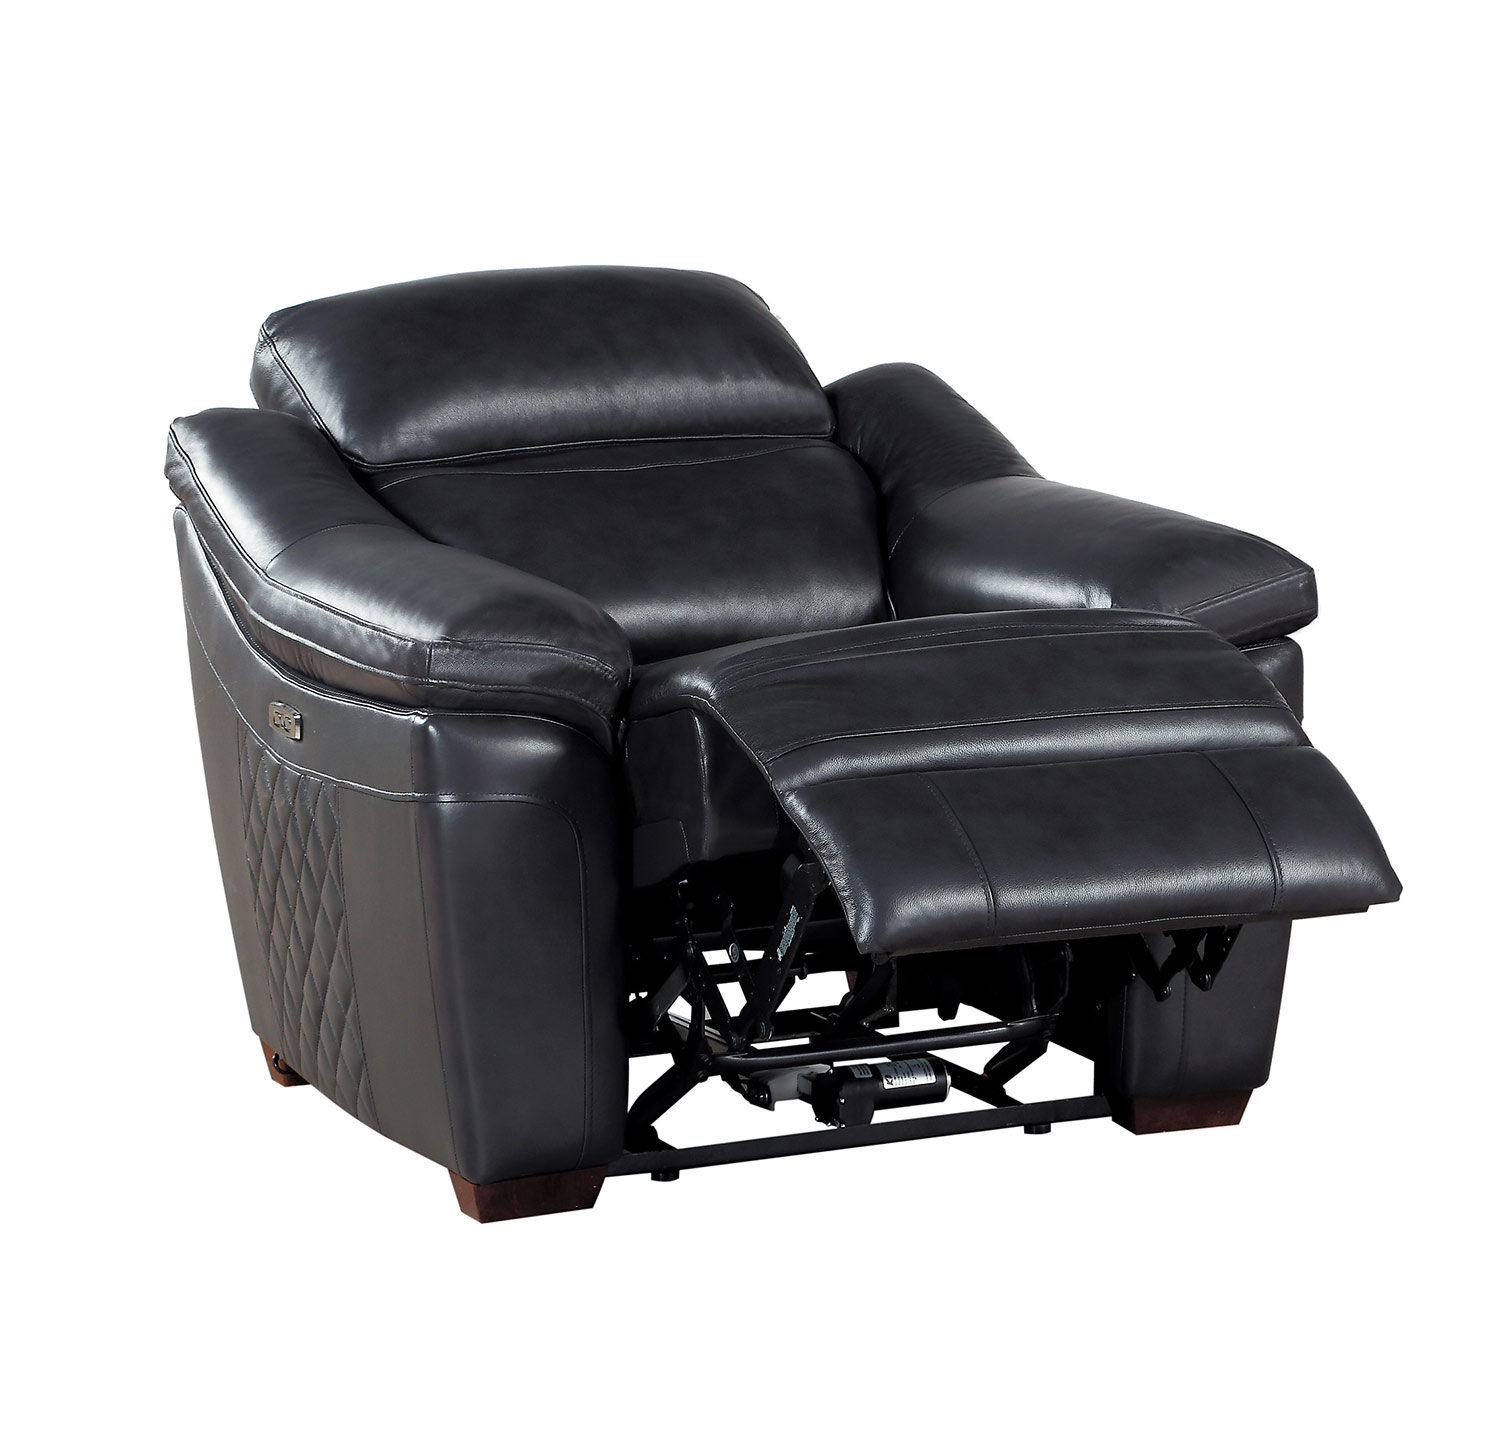 Homelegance Renzo Power Reclining Chair - Dark Gray